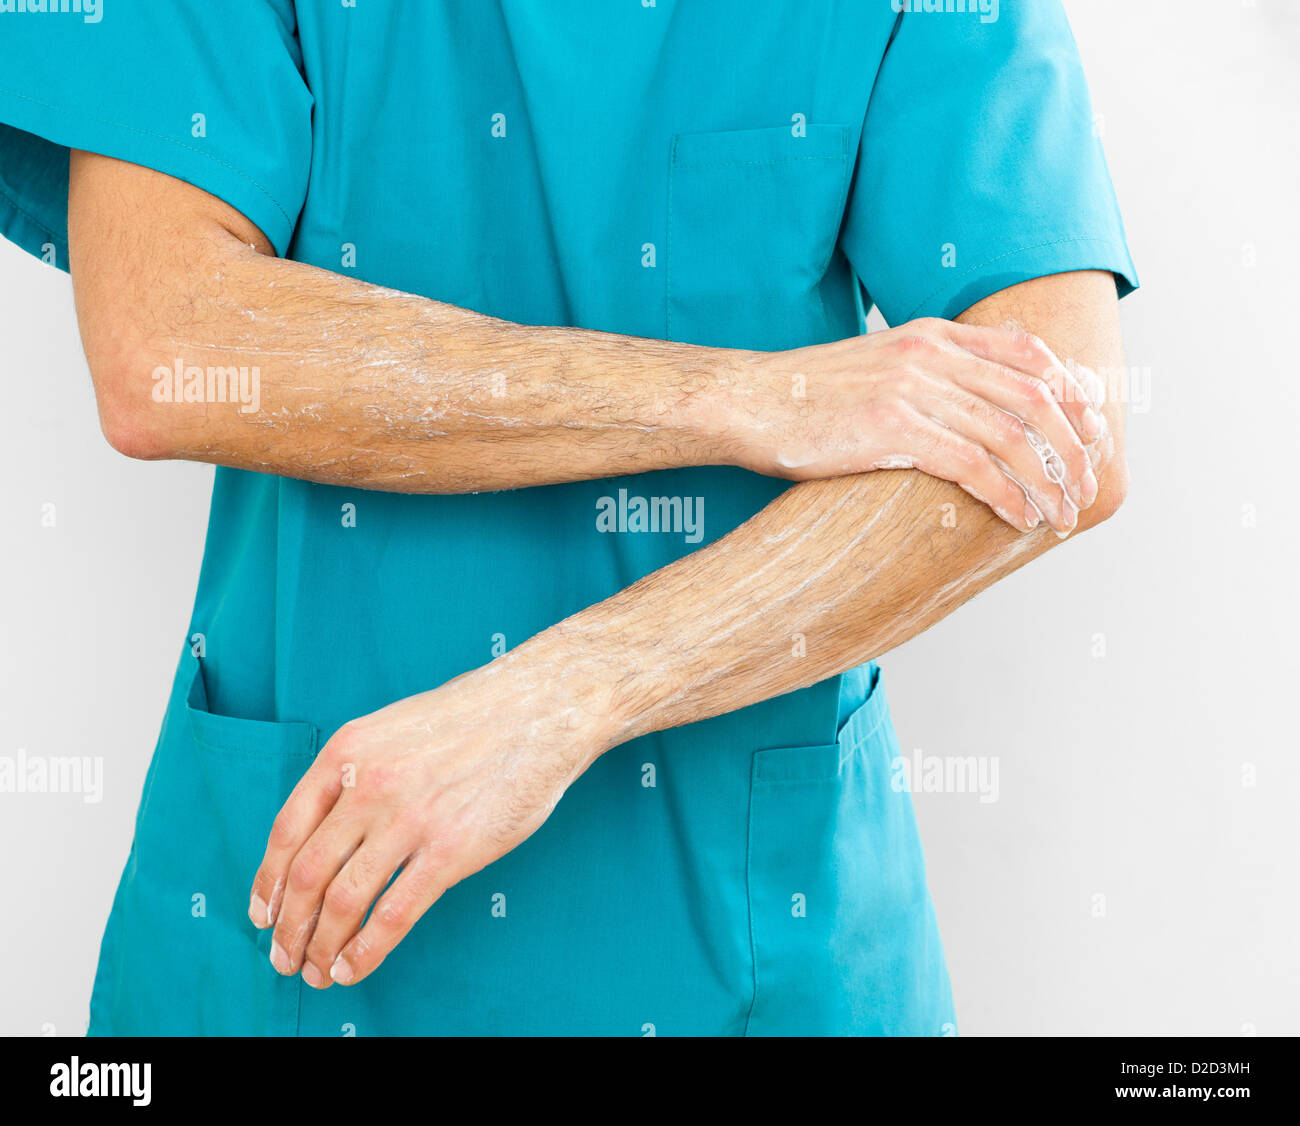 MODEL RELEASED Scrubbing up before surgery - Stock Image